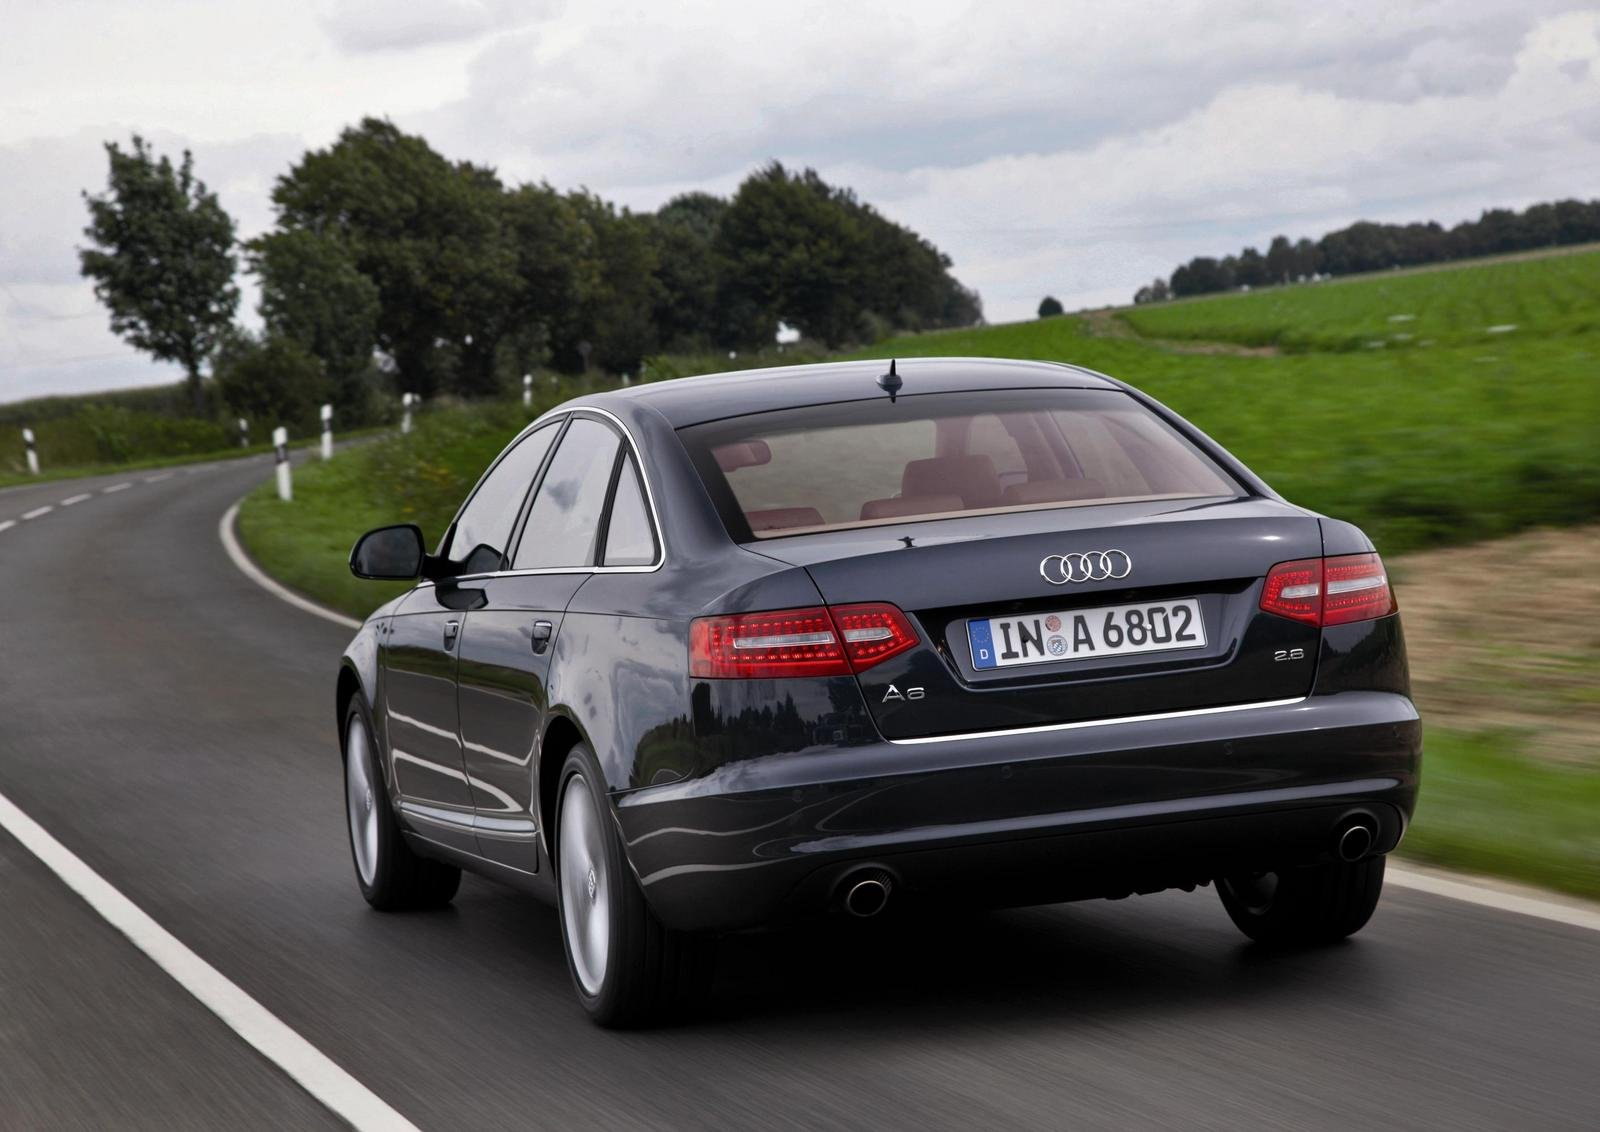 2009 audi a6 picture 284787 car review top speed. Black Bedroom Furniture Sets. Home Design Ideas